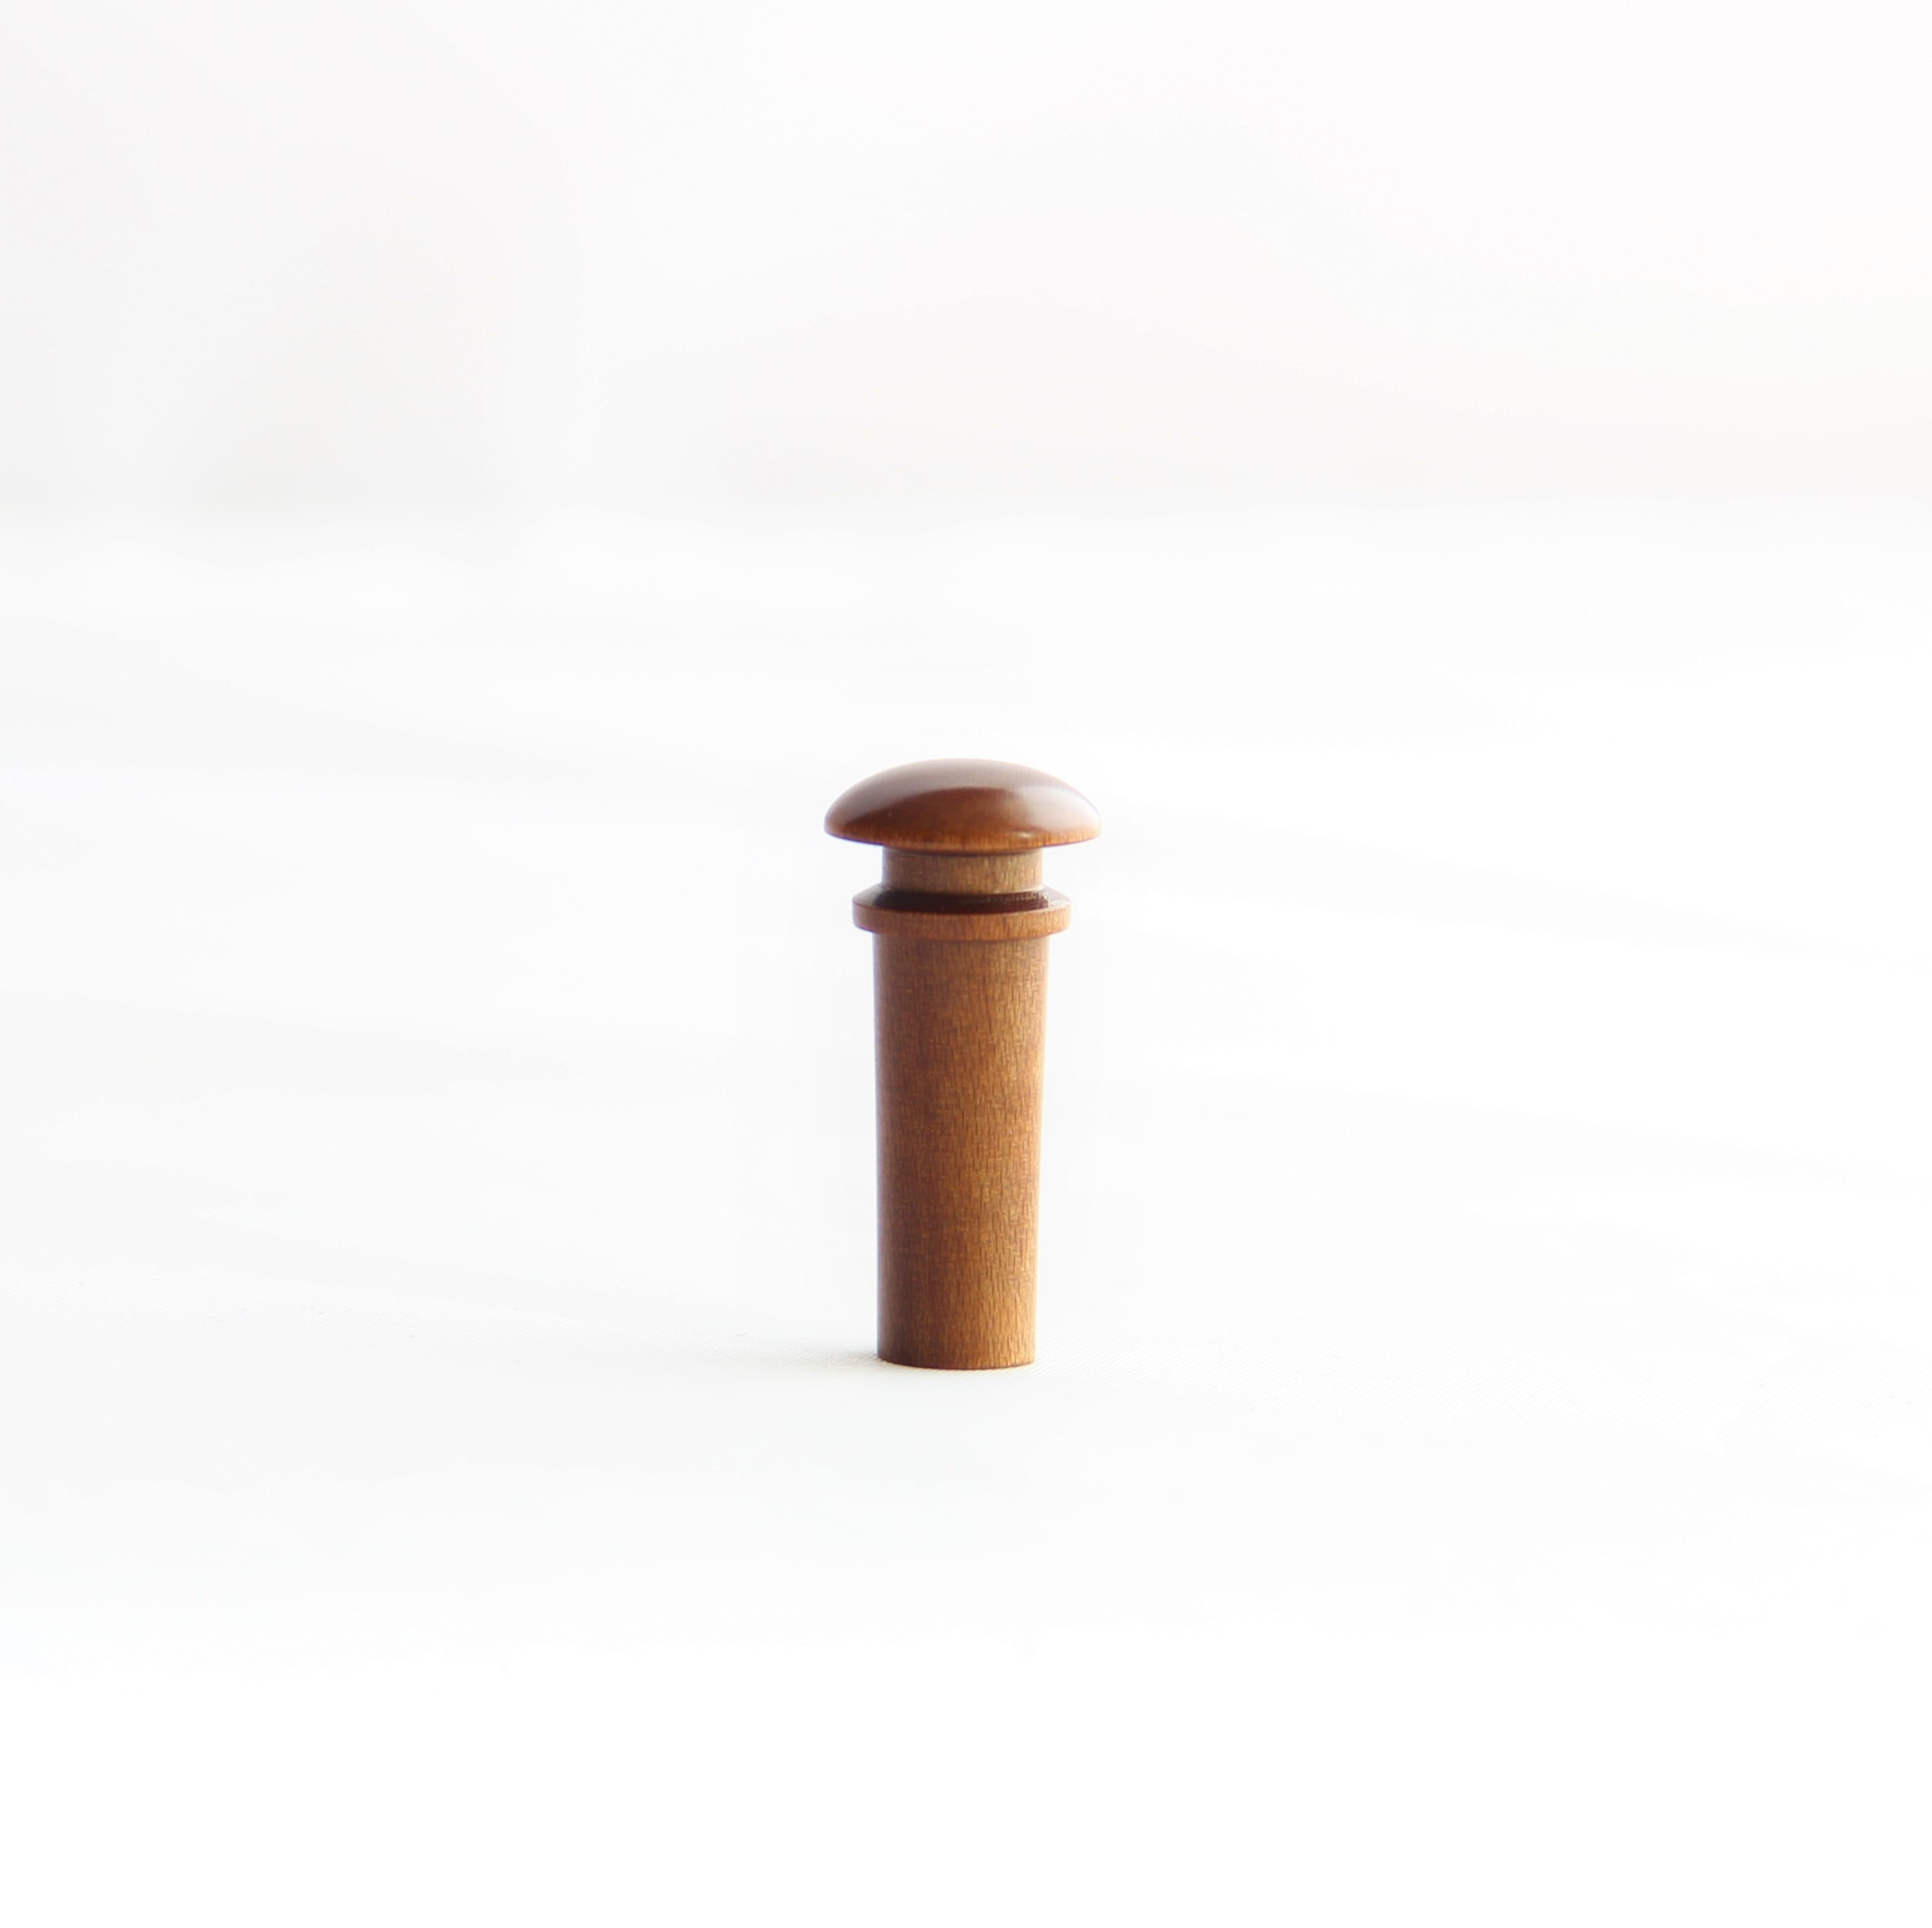 Endbutton from Sonowood maple made by Berdani Feinste Bestandteile